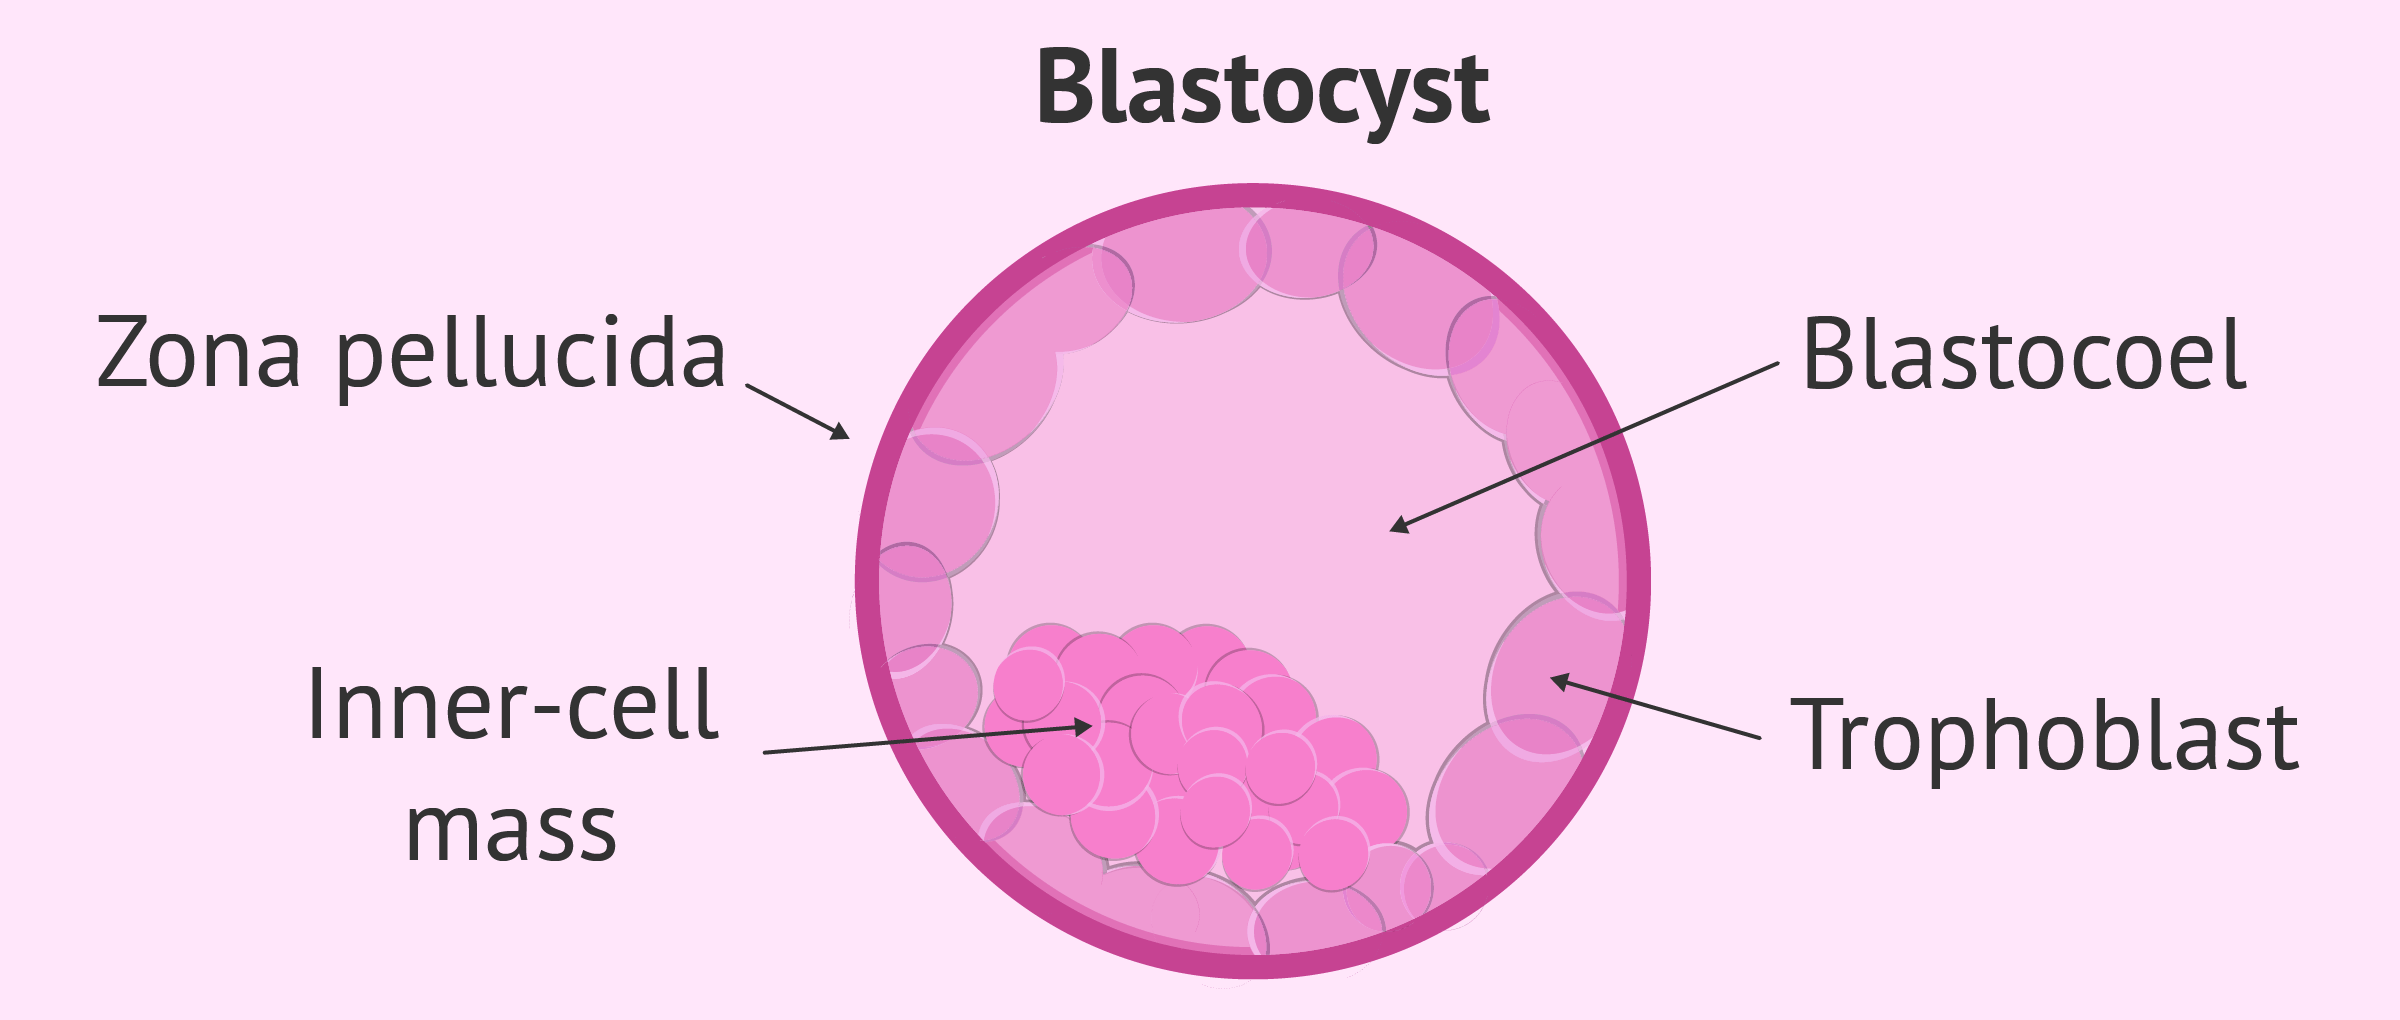 Blastocyst-stage embryo